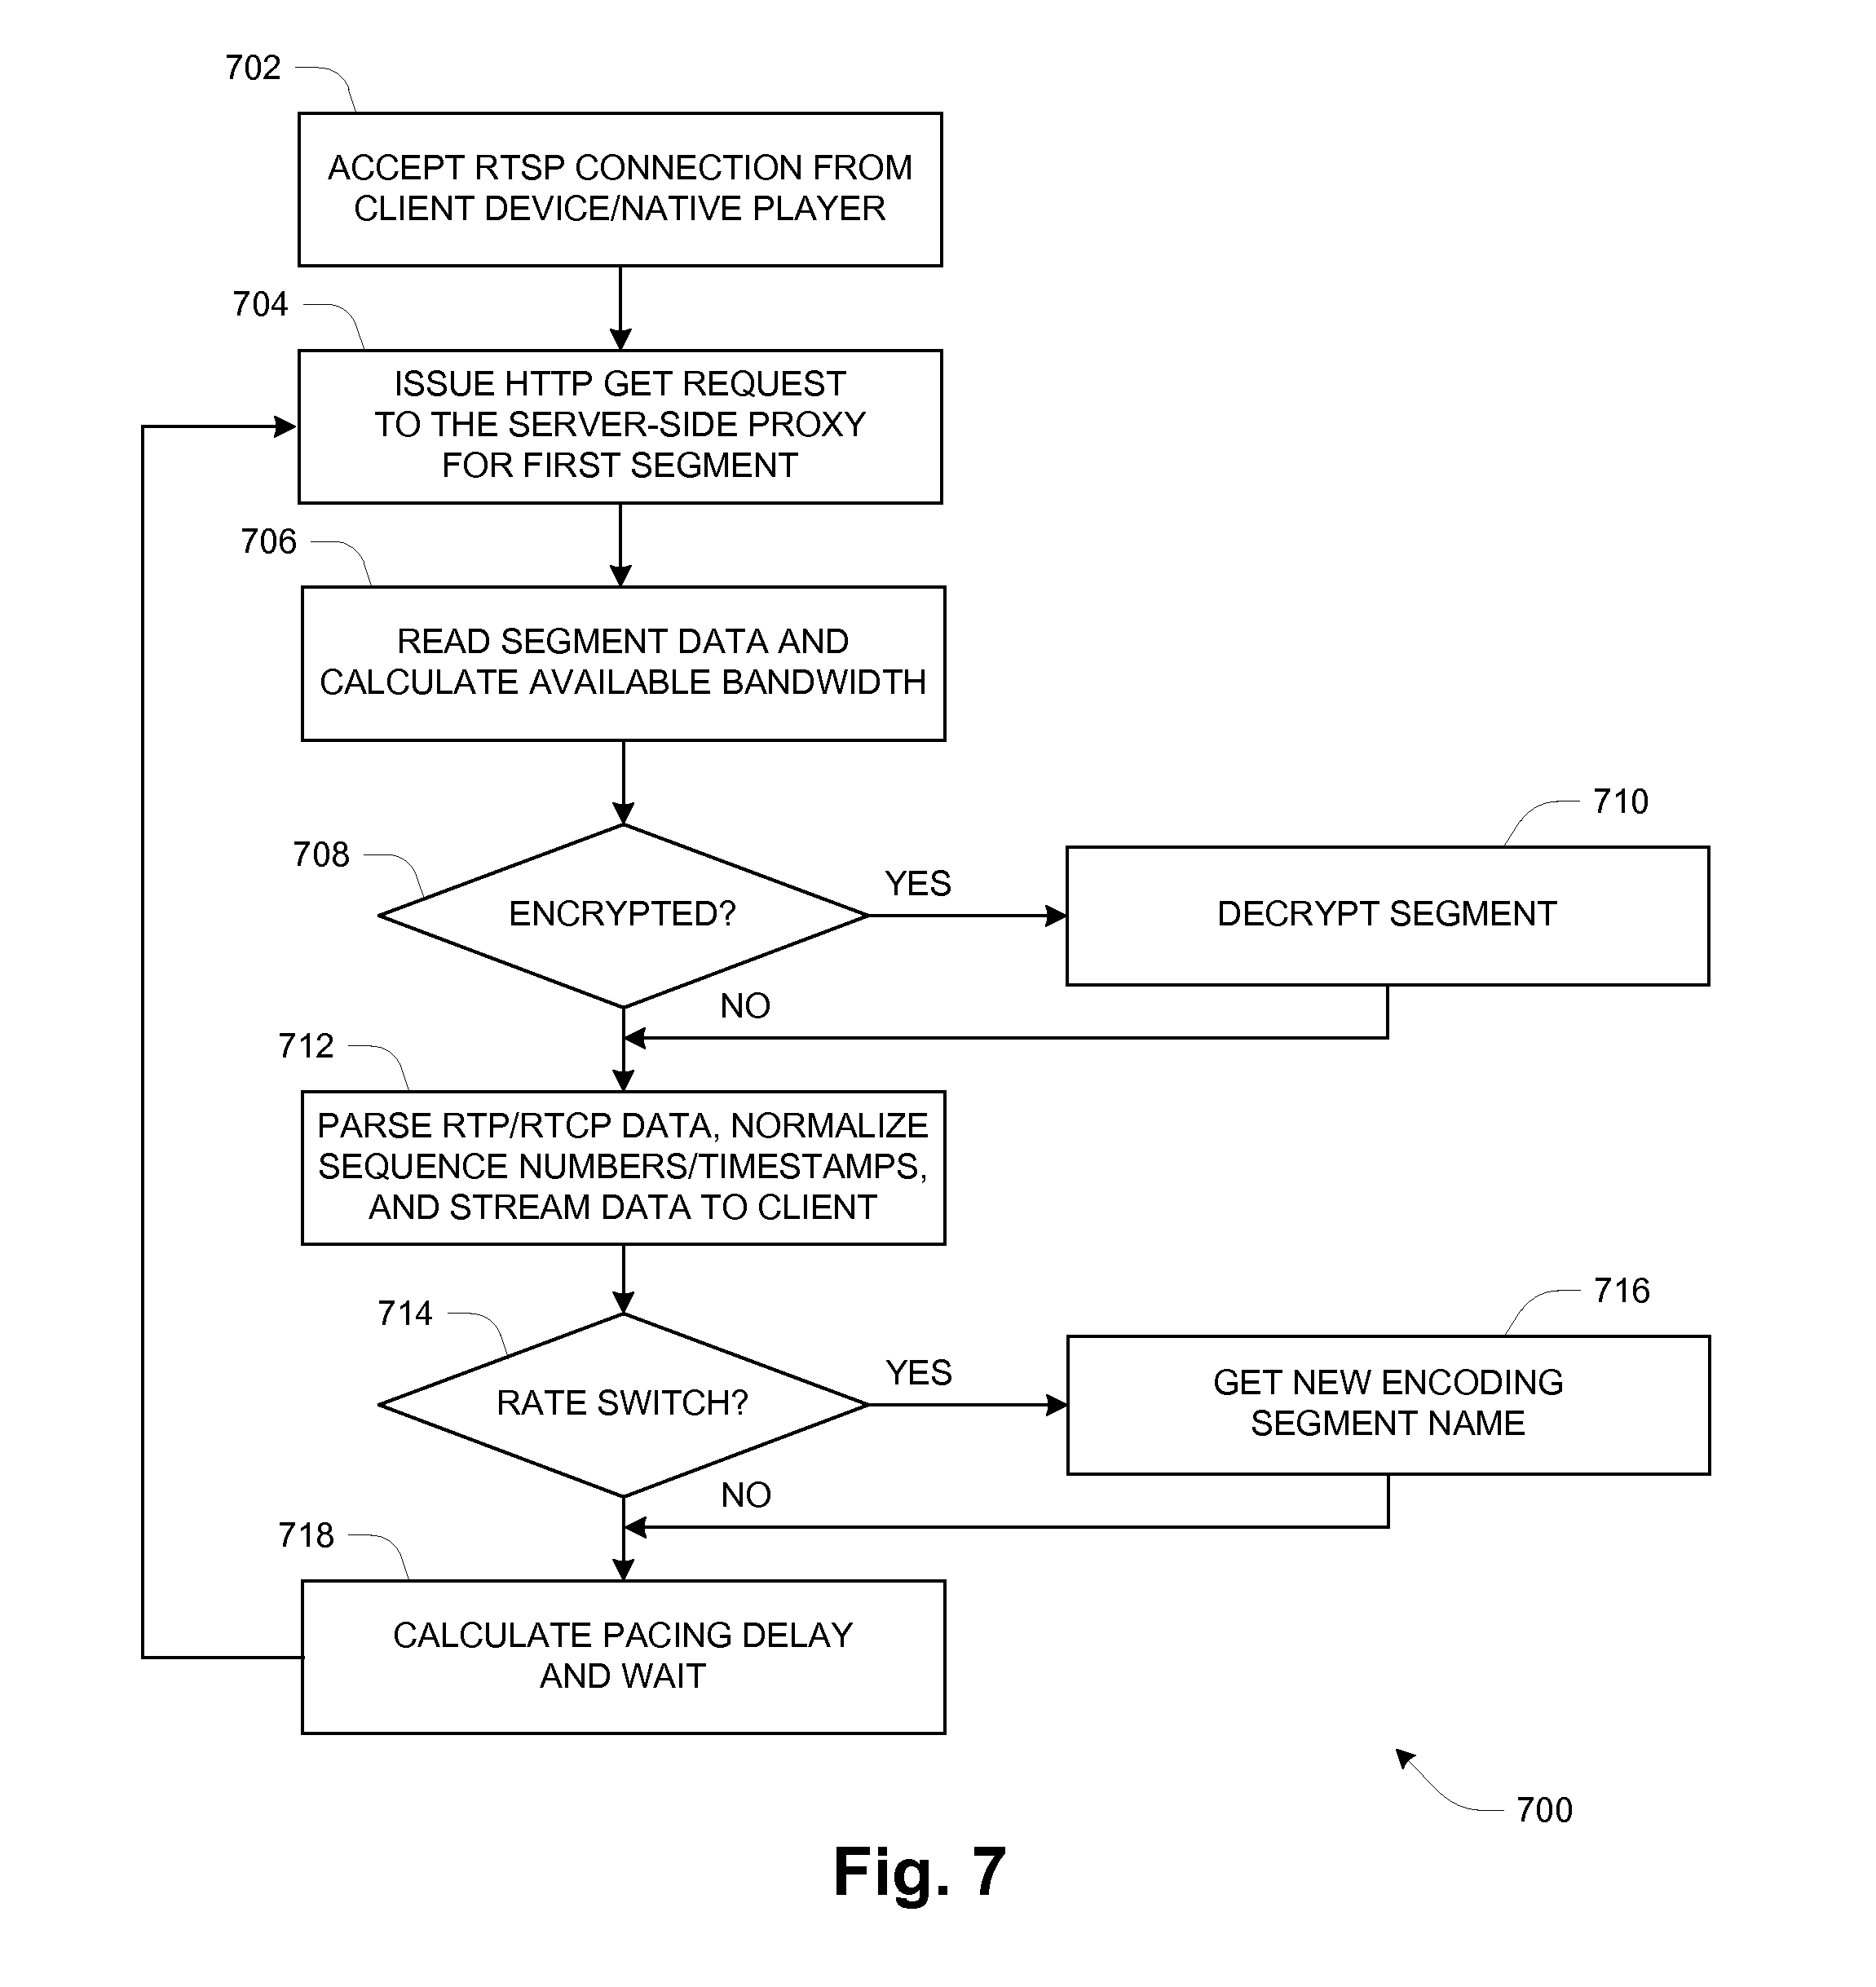 efficient method for re encryption in unreliable Method and apparatus for providing secure streaming data transmission facilities using unreliable encryption method transmission facilities using unreliable.